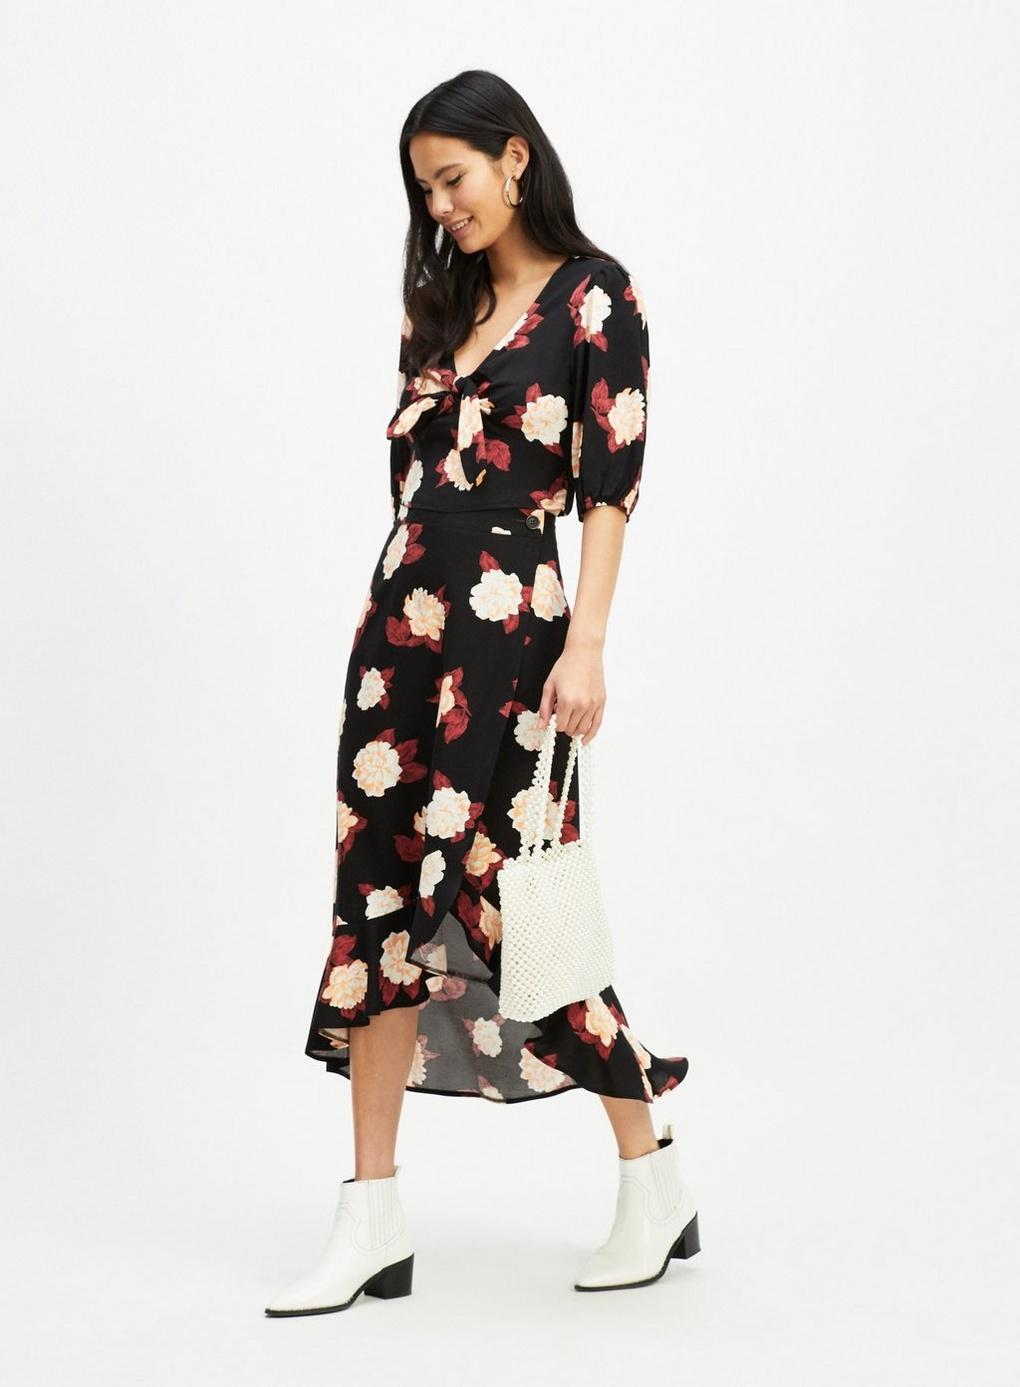 40ee5f2b31 Miss Selfridge Black Floral Wrap Midi Skirt – DACC